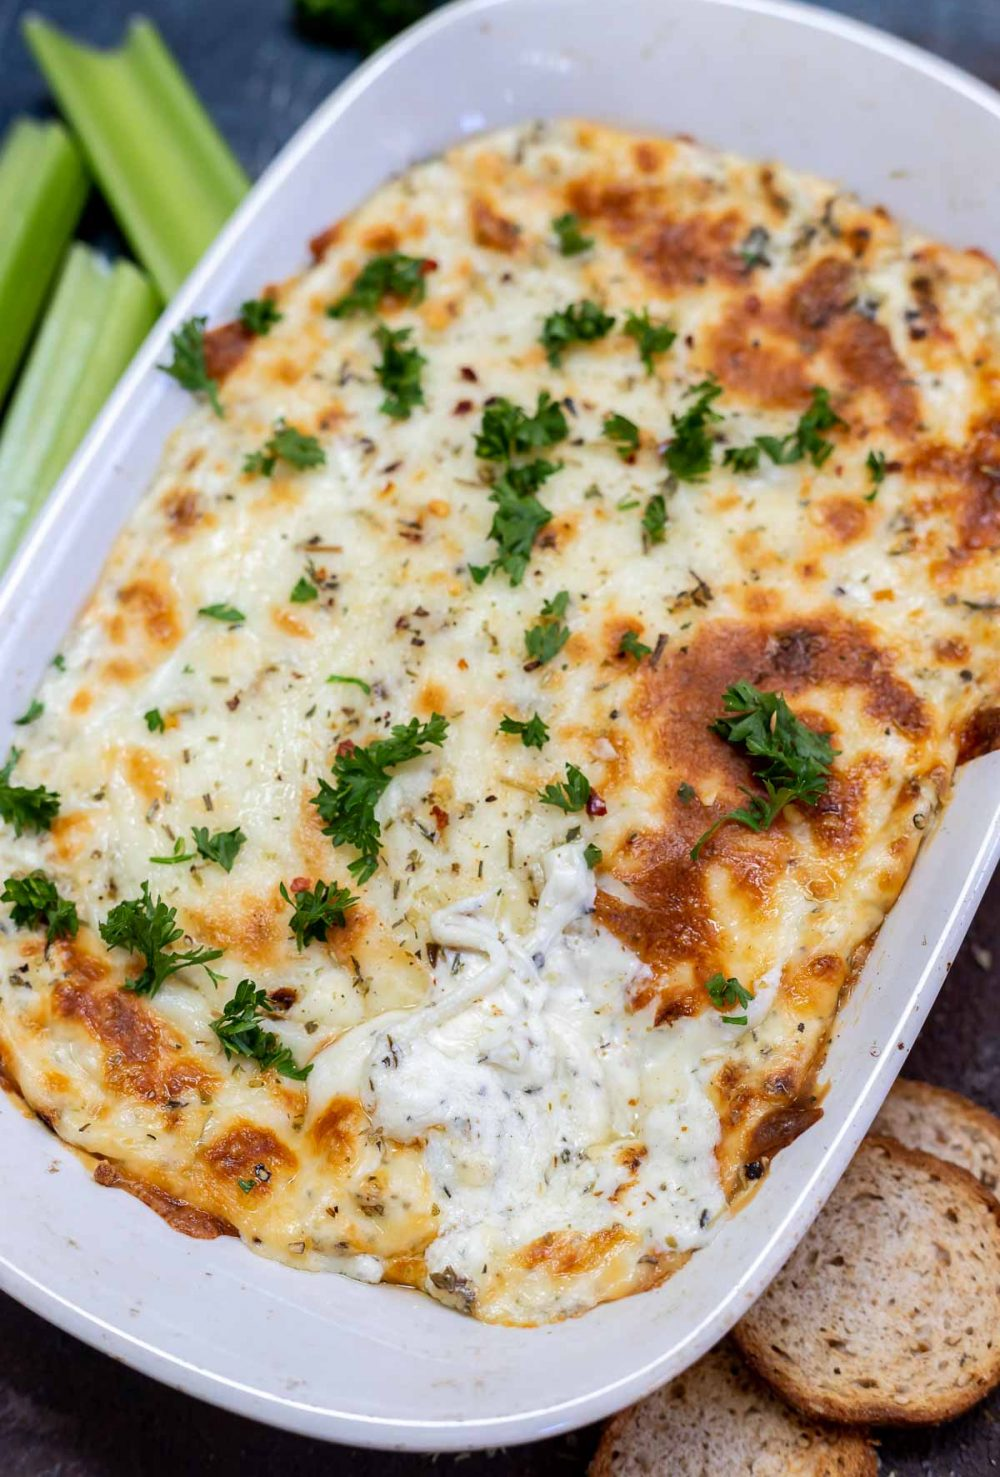 melty cheese dip topped with chopped parsley in white serving dish